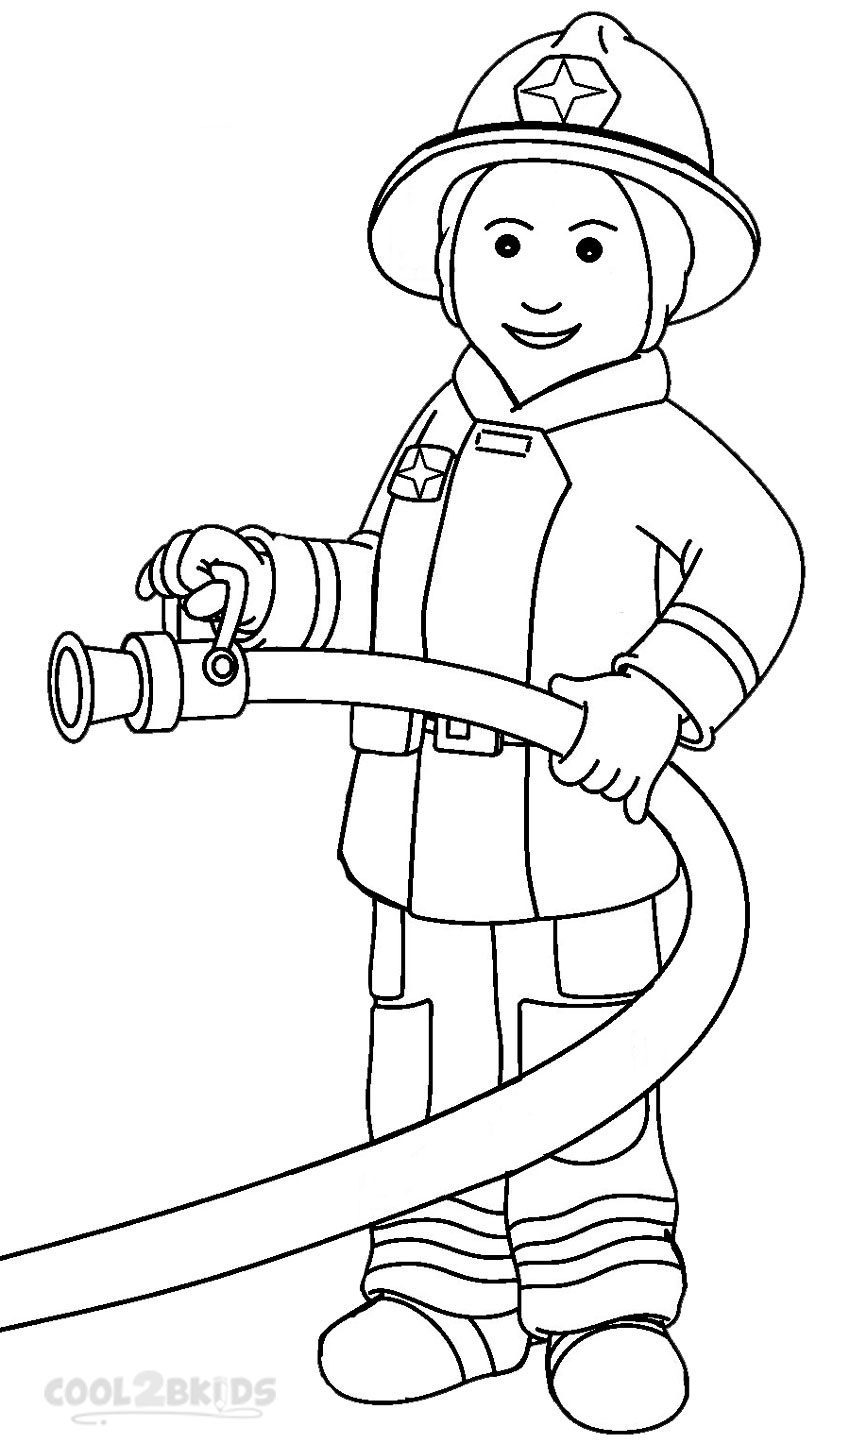 Firefighter black and white clipart